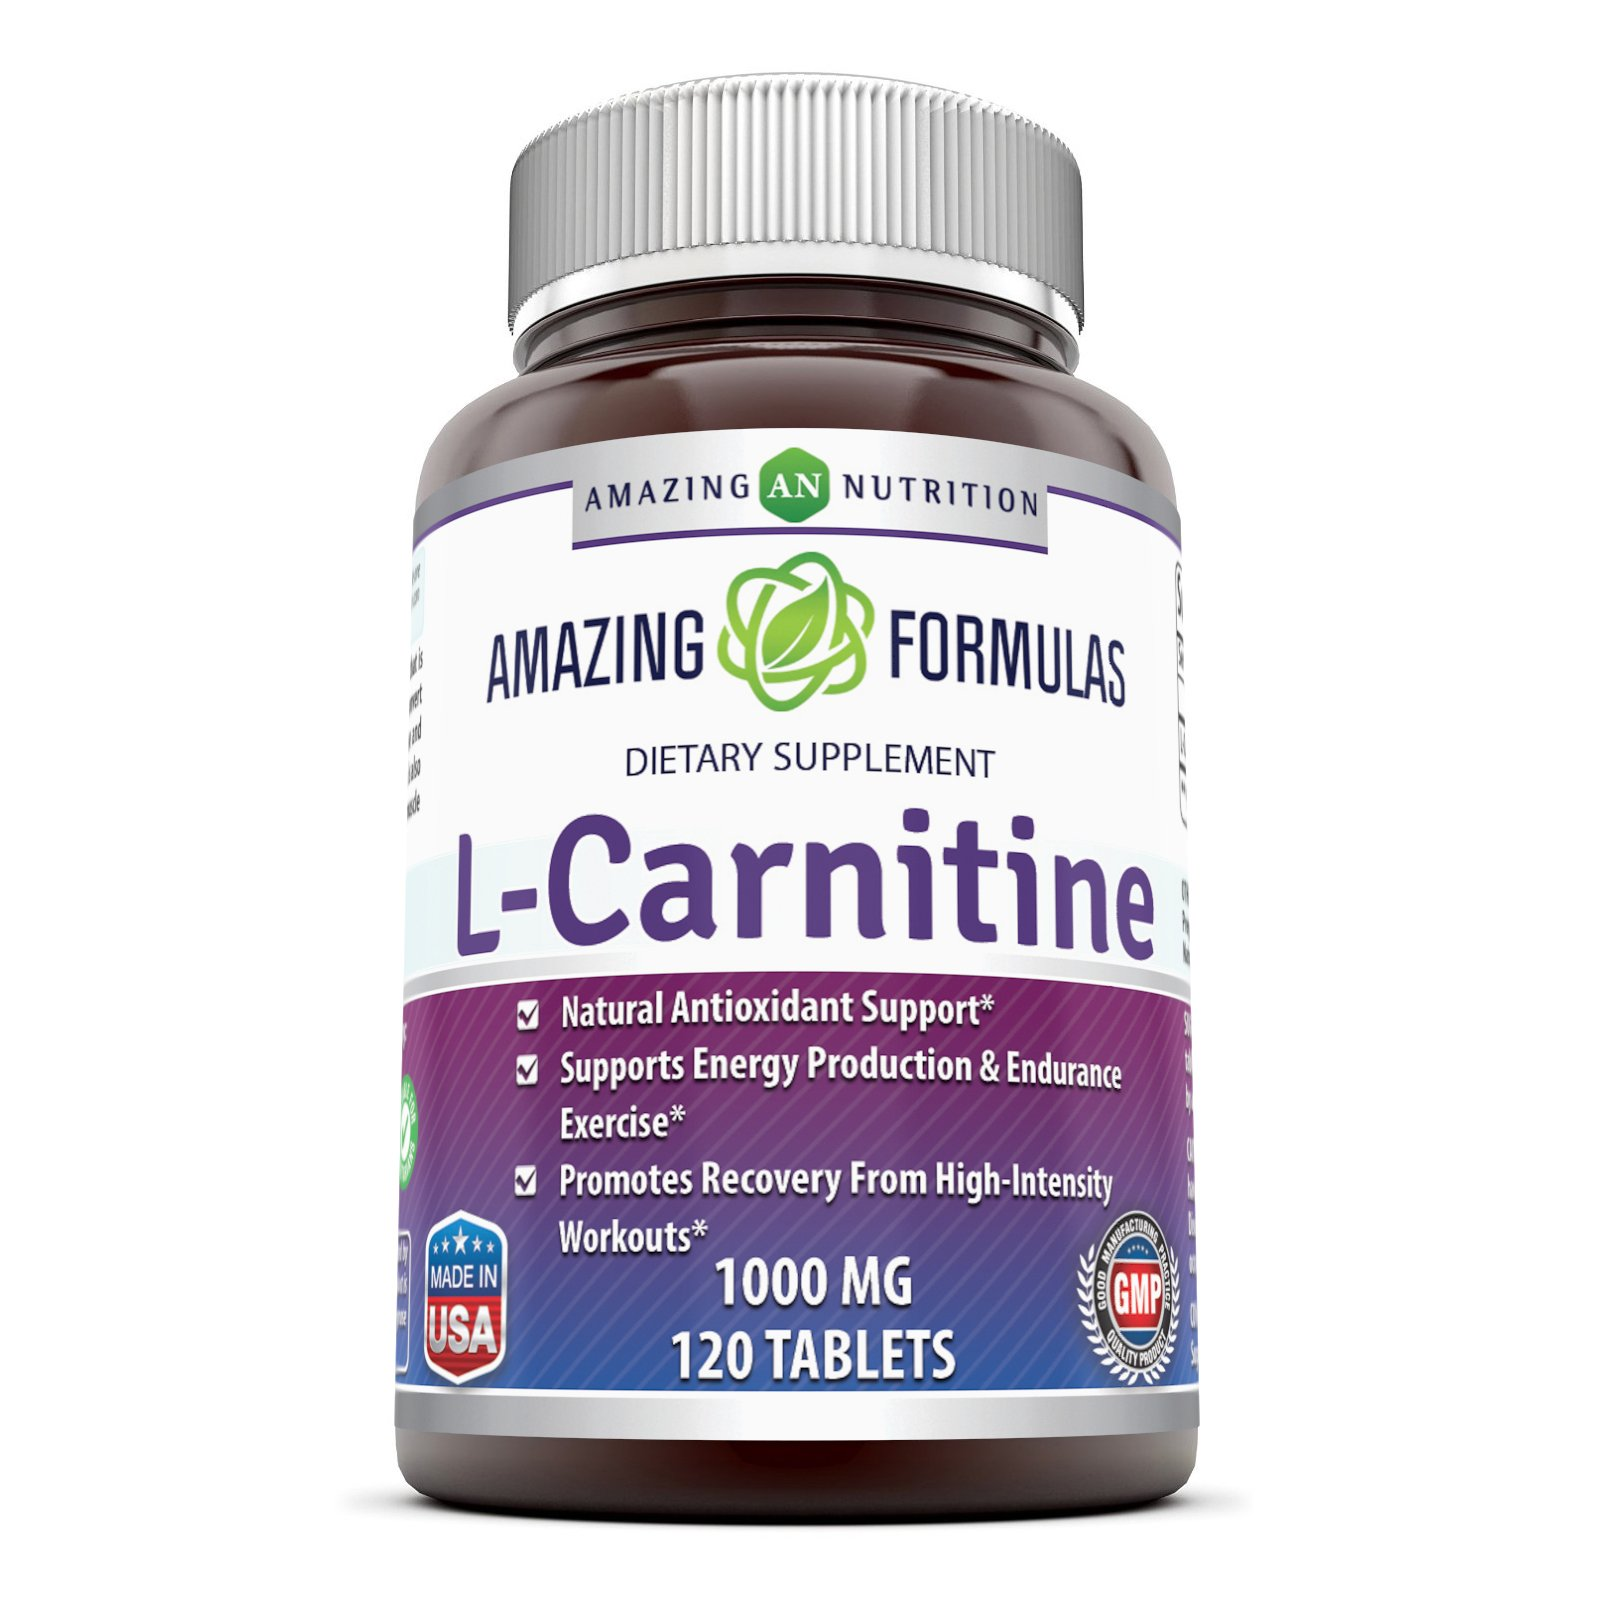 Amazing Formulas L Carnitine Fumarate Supplement - 1000 Mg, 120 Tablets (Non-GMO) - Natural Antioxidant Support - Supports Energy Prduction & Endurance Exercise - Promotes Recovery from High